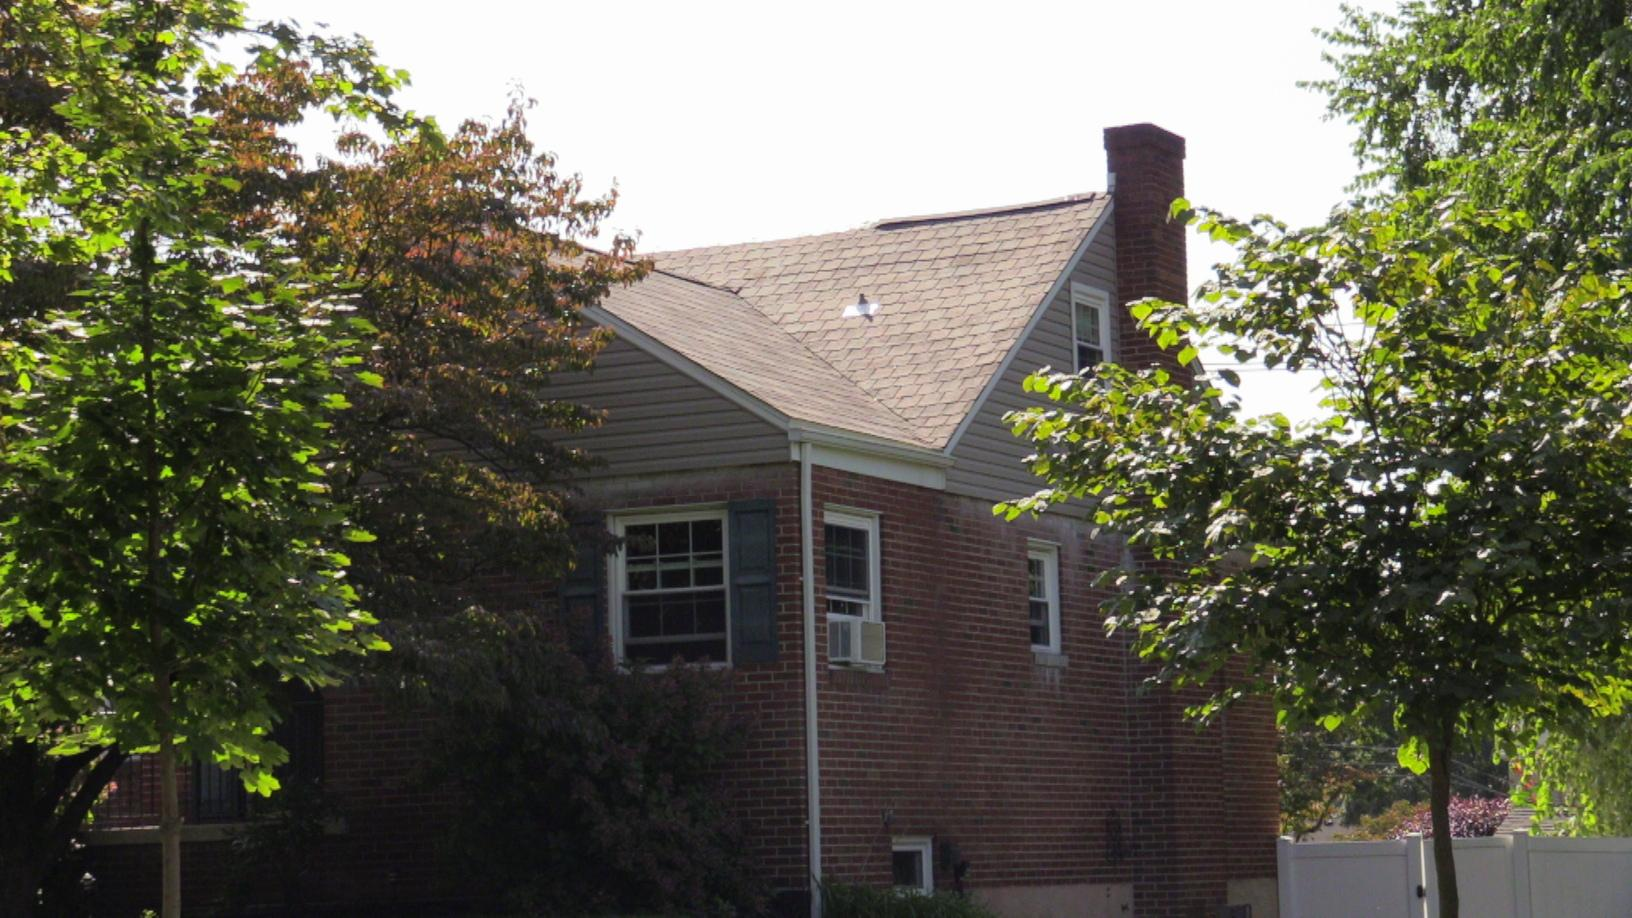 Roof Replacement West Allentown Roofing Replacement